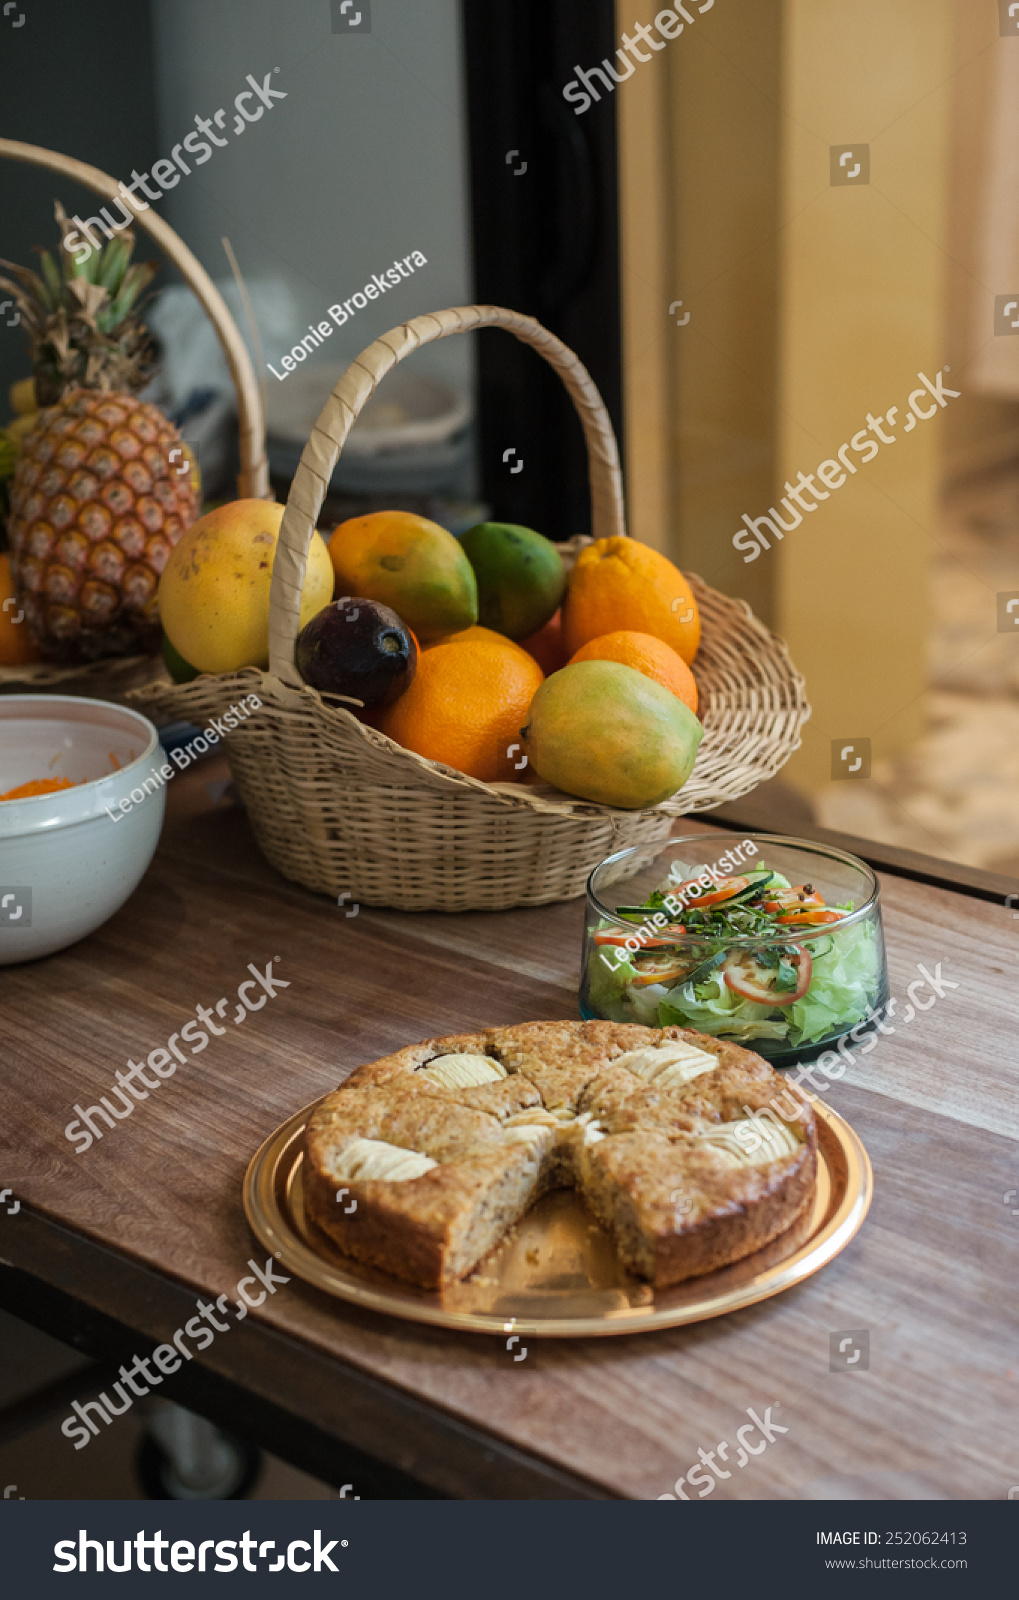 Apple pie salad and fruit in a domestic kitchen